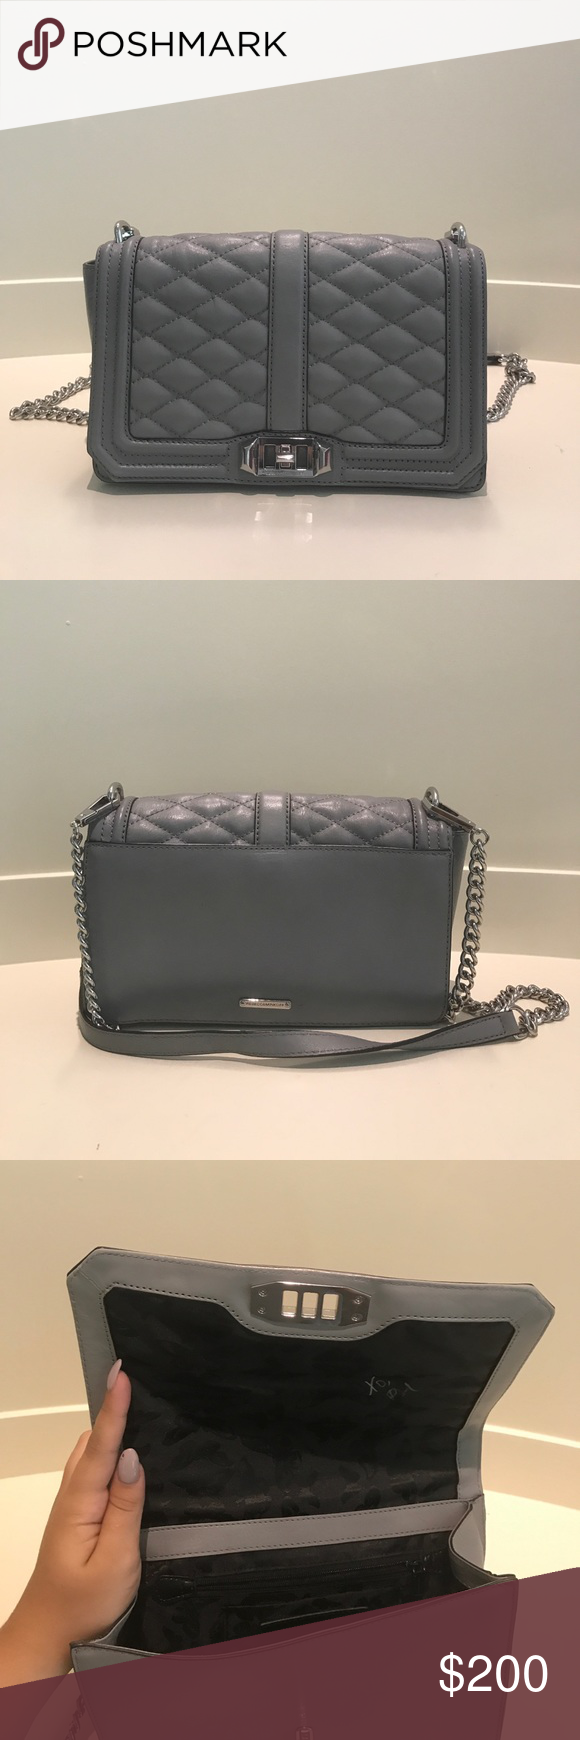 Rebecca Minkoff Over Shoulder Bag Perfect bag to dress up or dress down. It's a nice grey color and it can fit your wallet, your keys, and your favorite lipstick. Rebecca Minkoff Bags Shoulder Bags